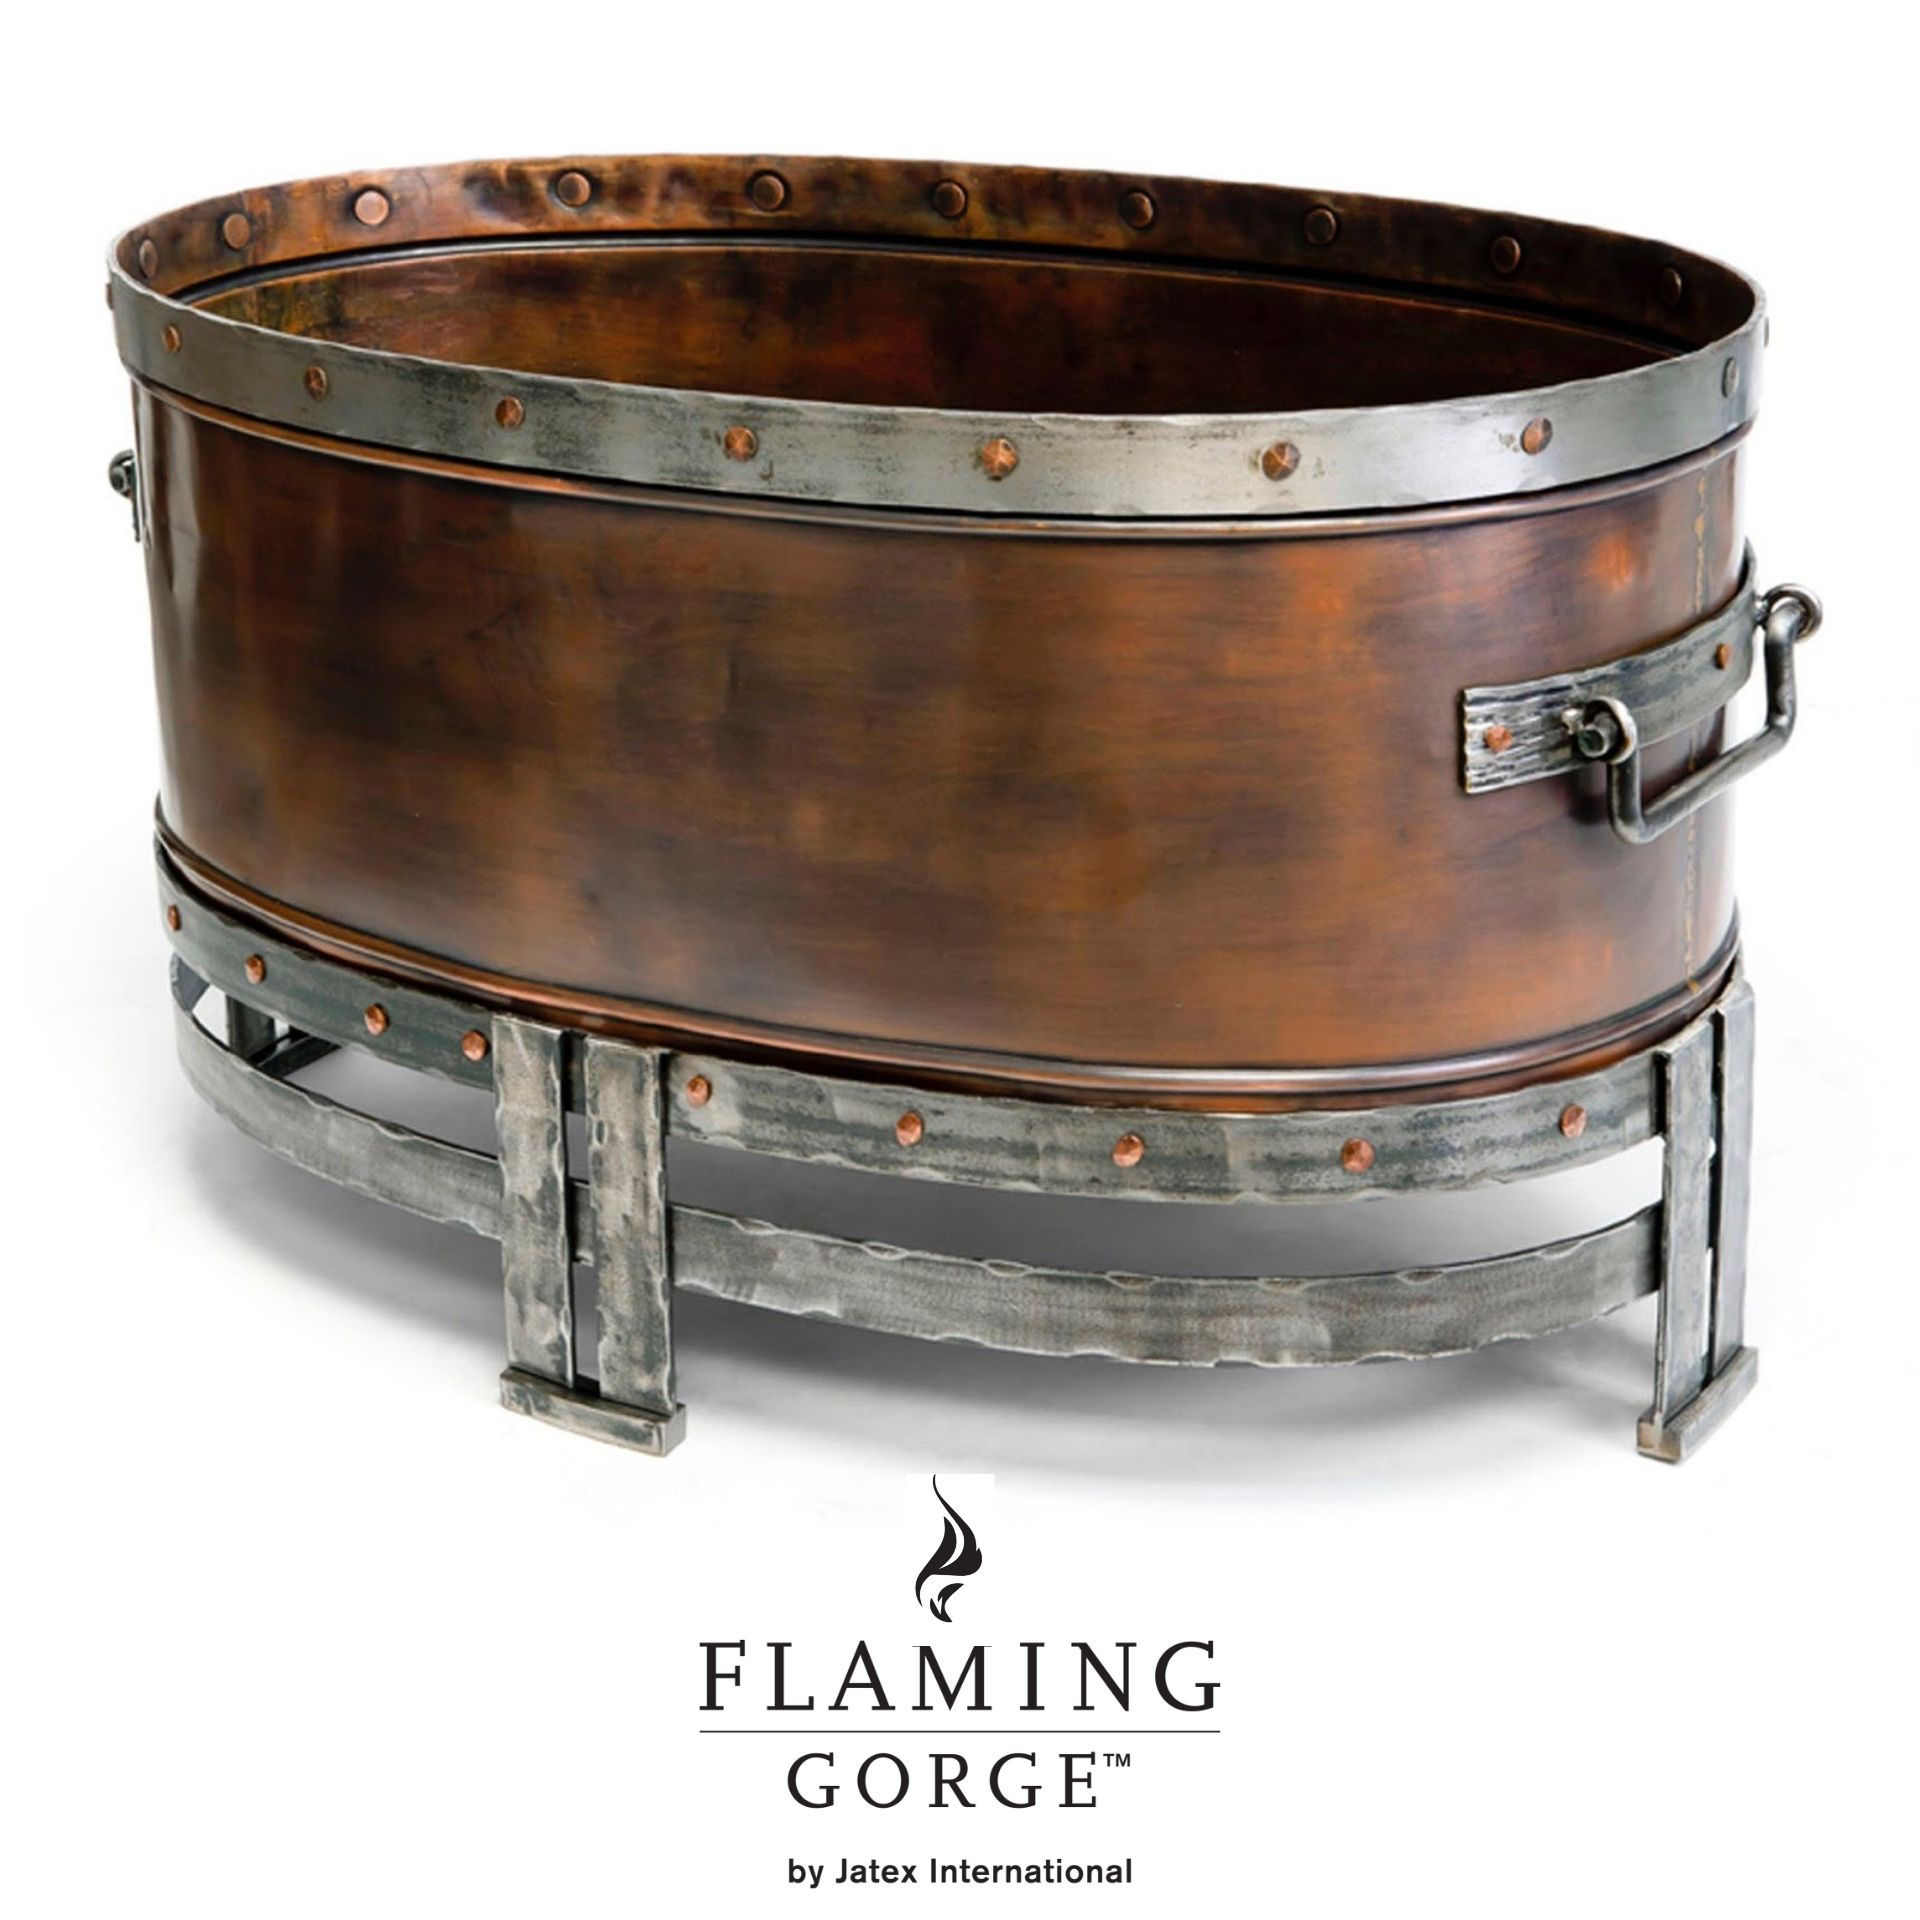 The Copperstone Firepit by Flaming Gorge is crafted of hand wrought iron and copper